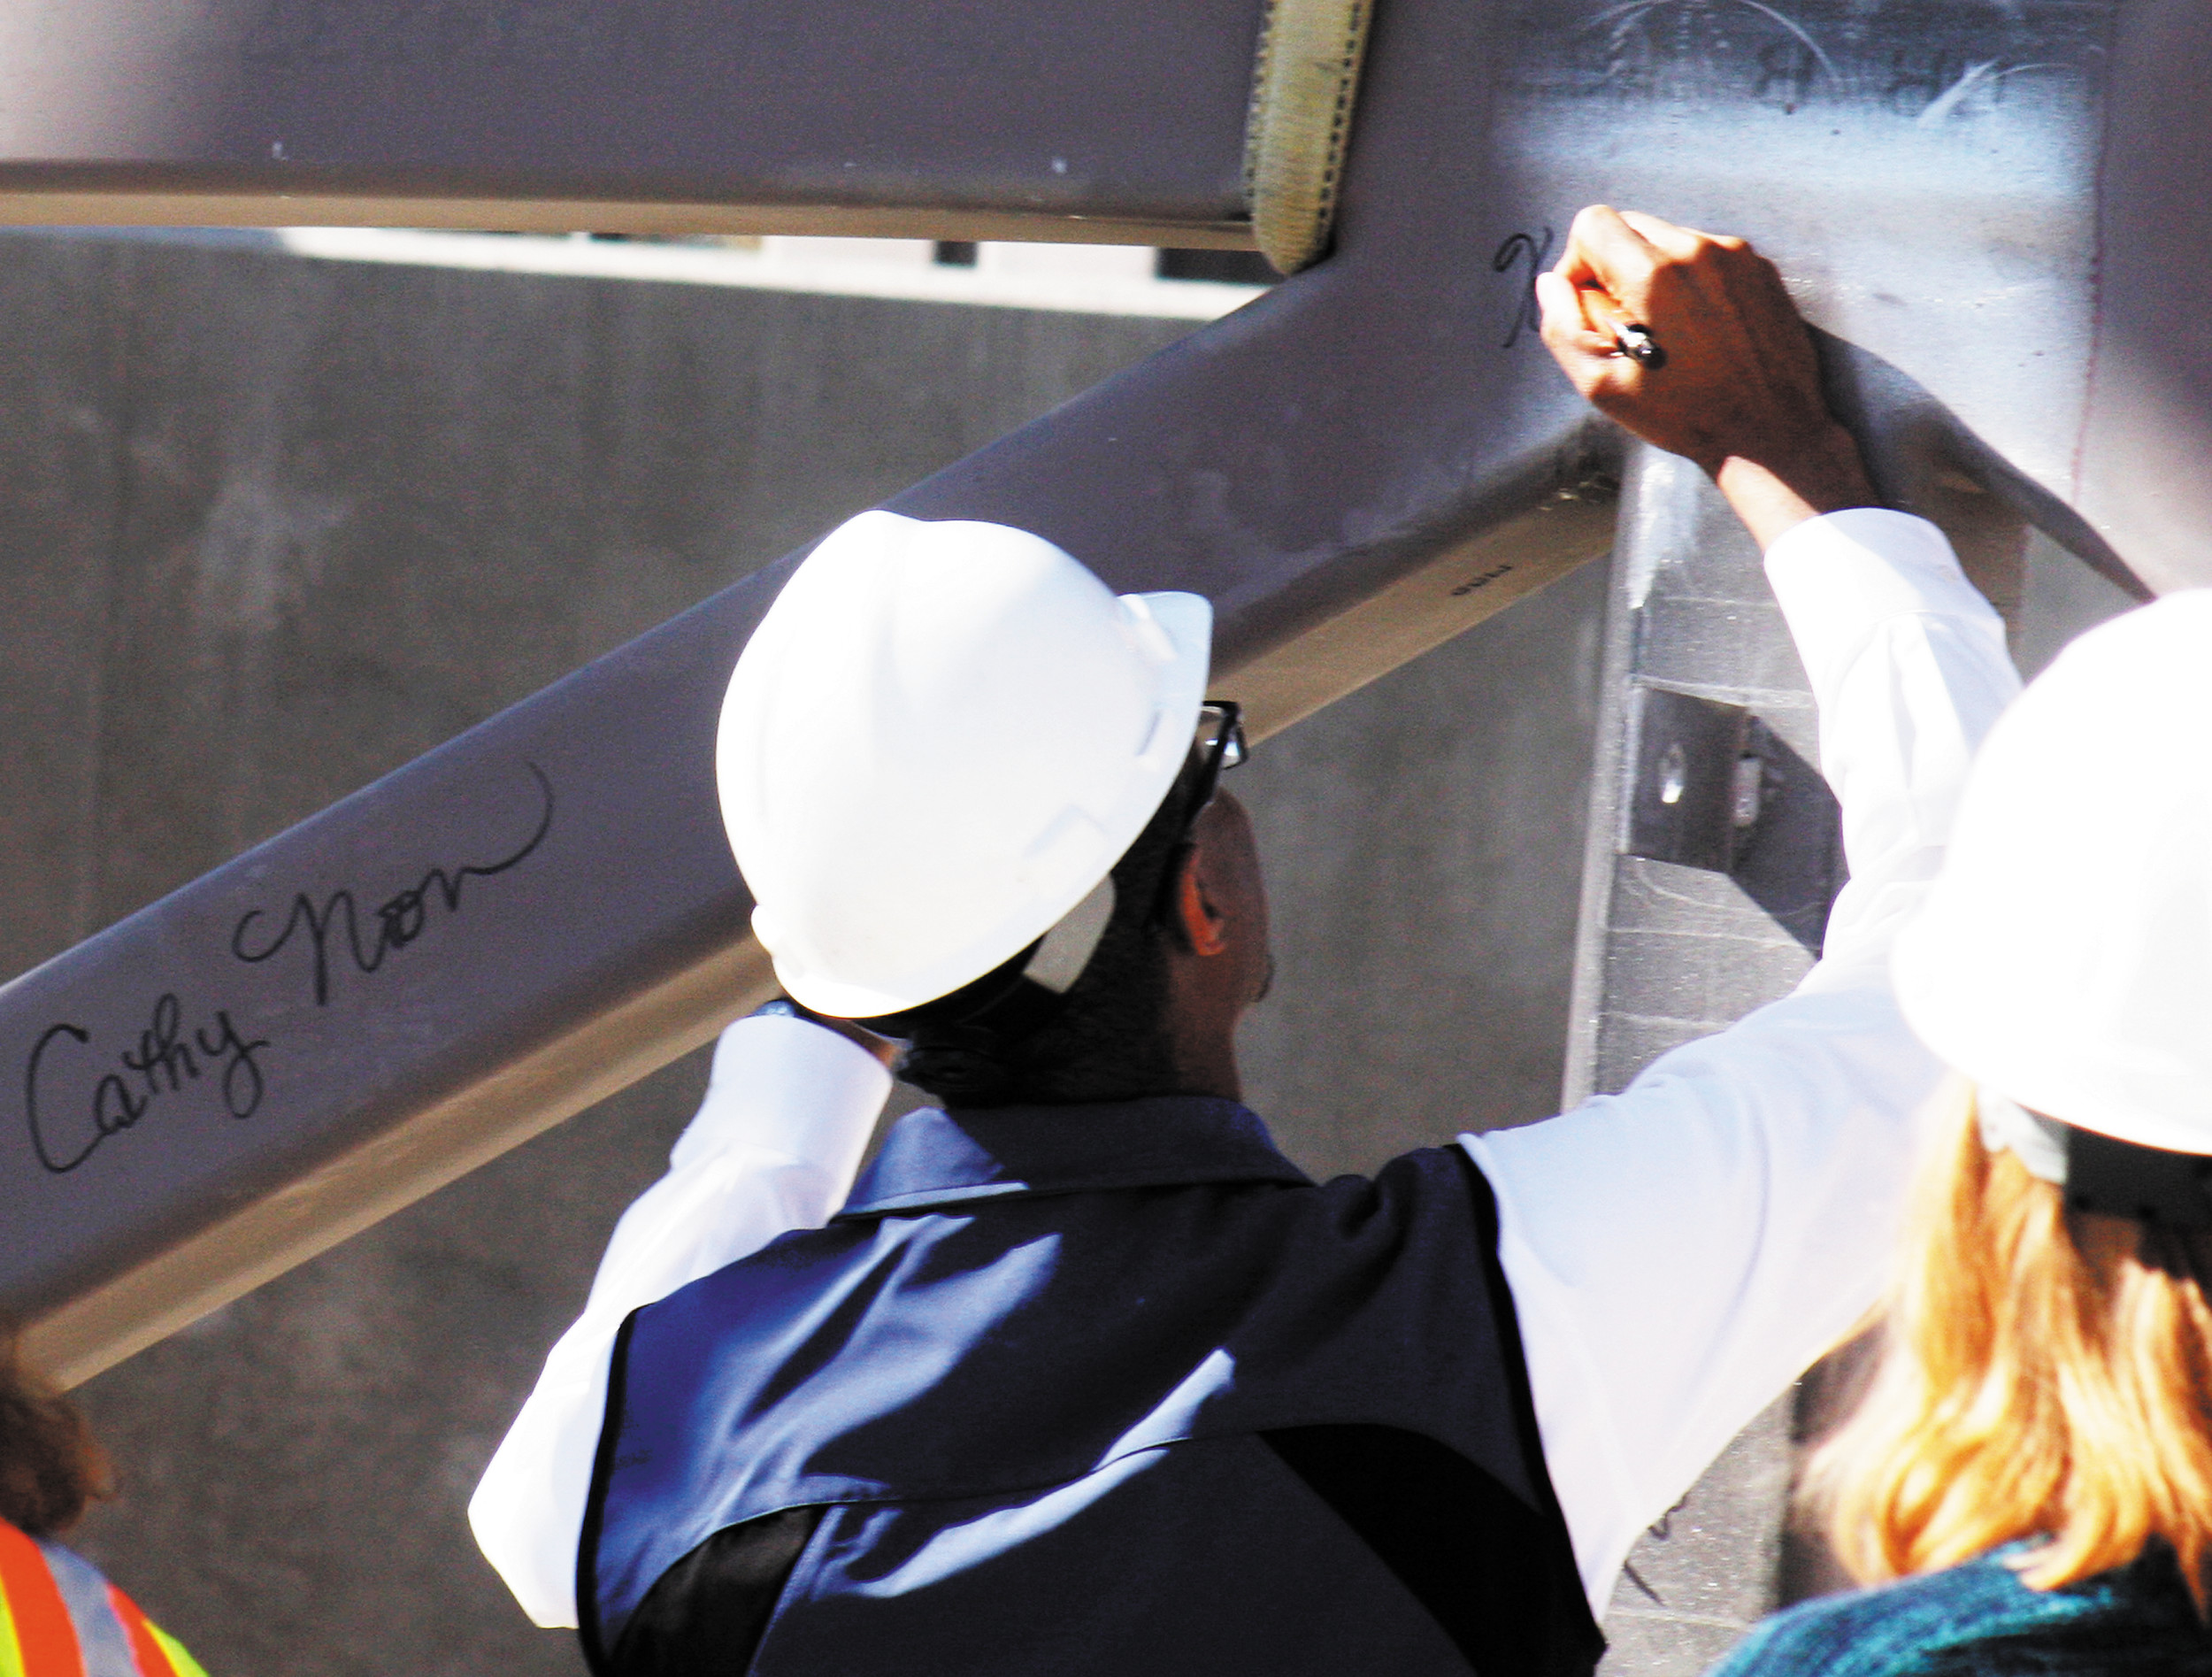 Centennial City Councilmember Keith Gardner signs his name on the truss, not far from the mayor's name to his left.